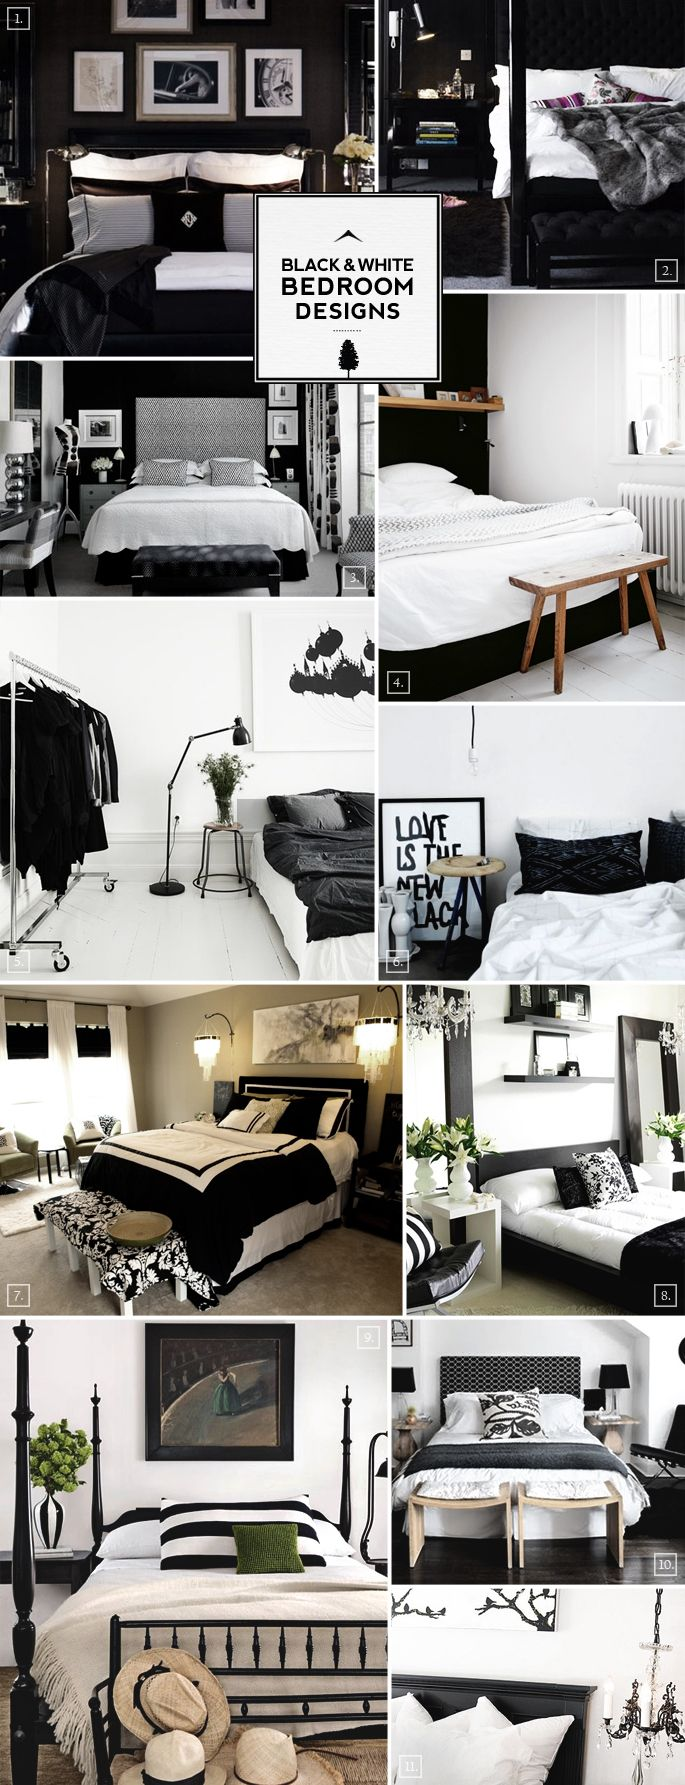 black and white bedroom designs and decor ideas - Black White And Silver Bedroom Ideas